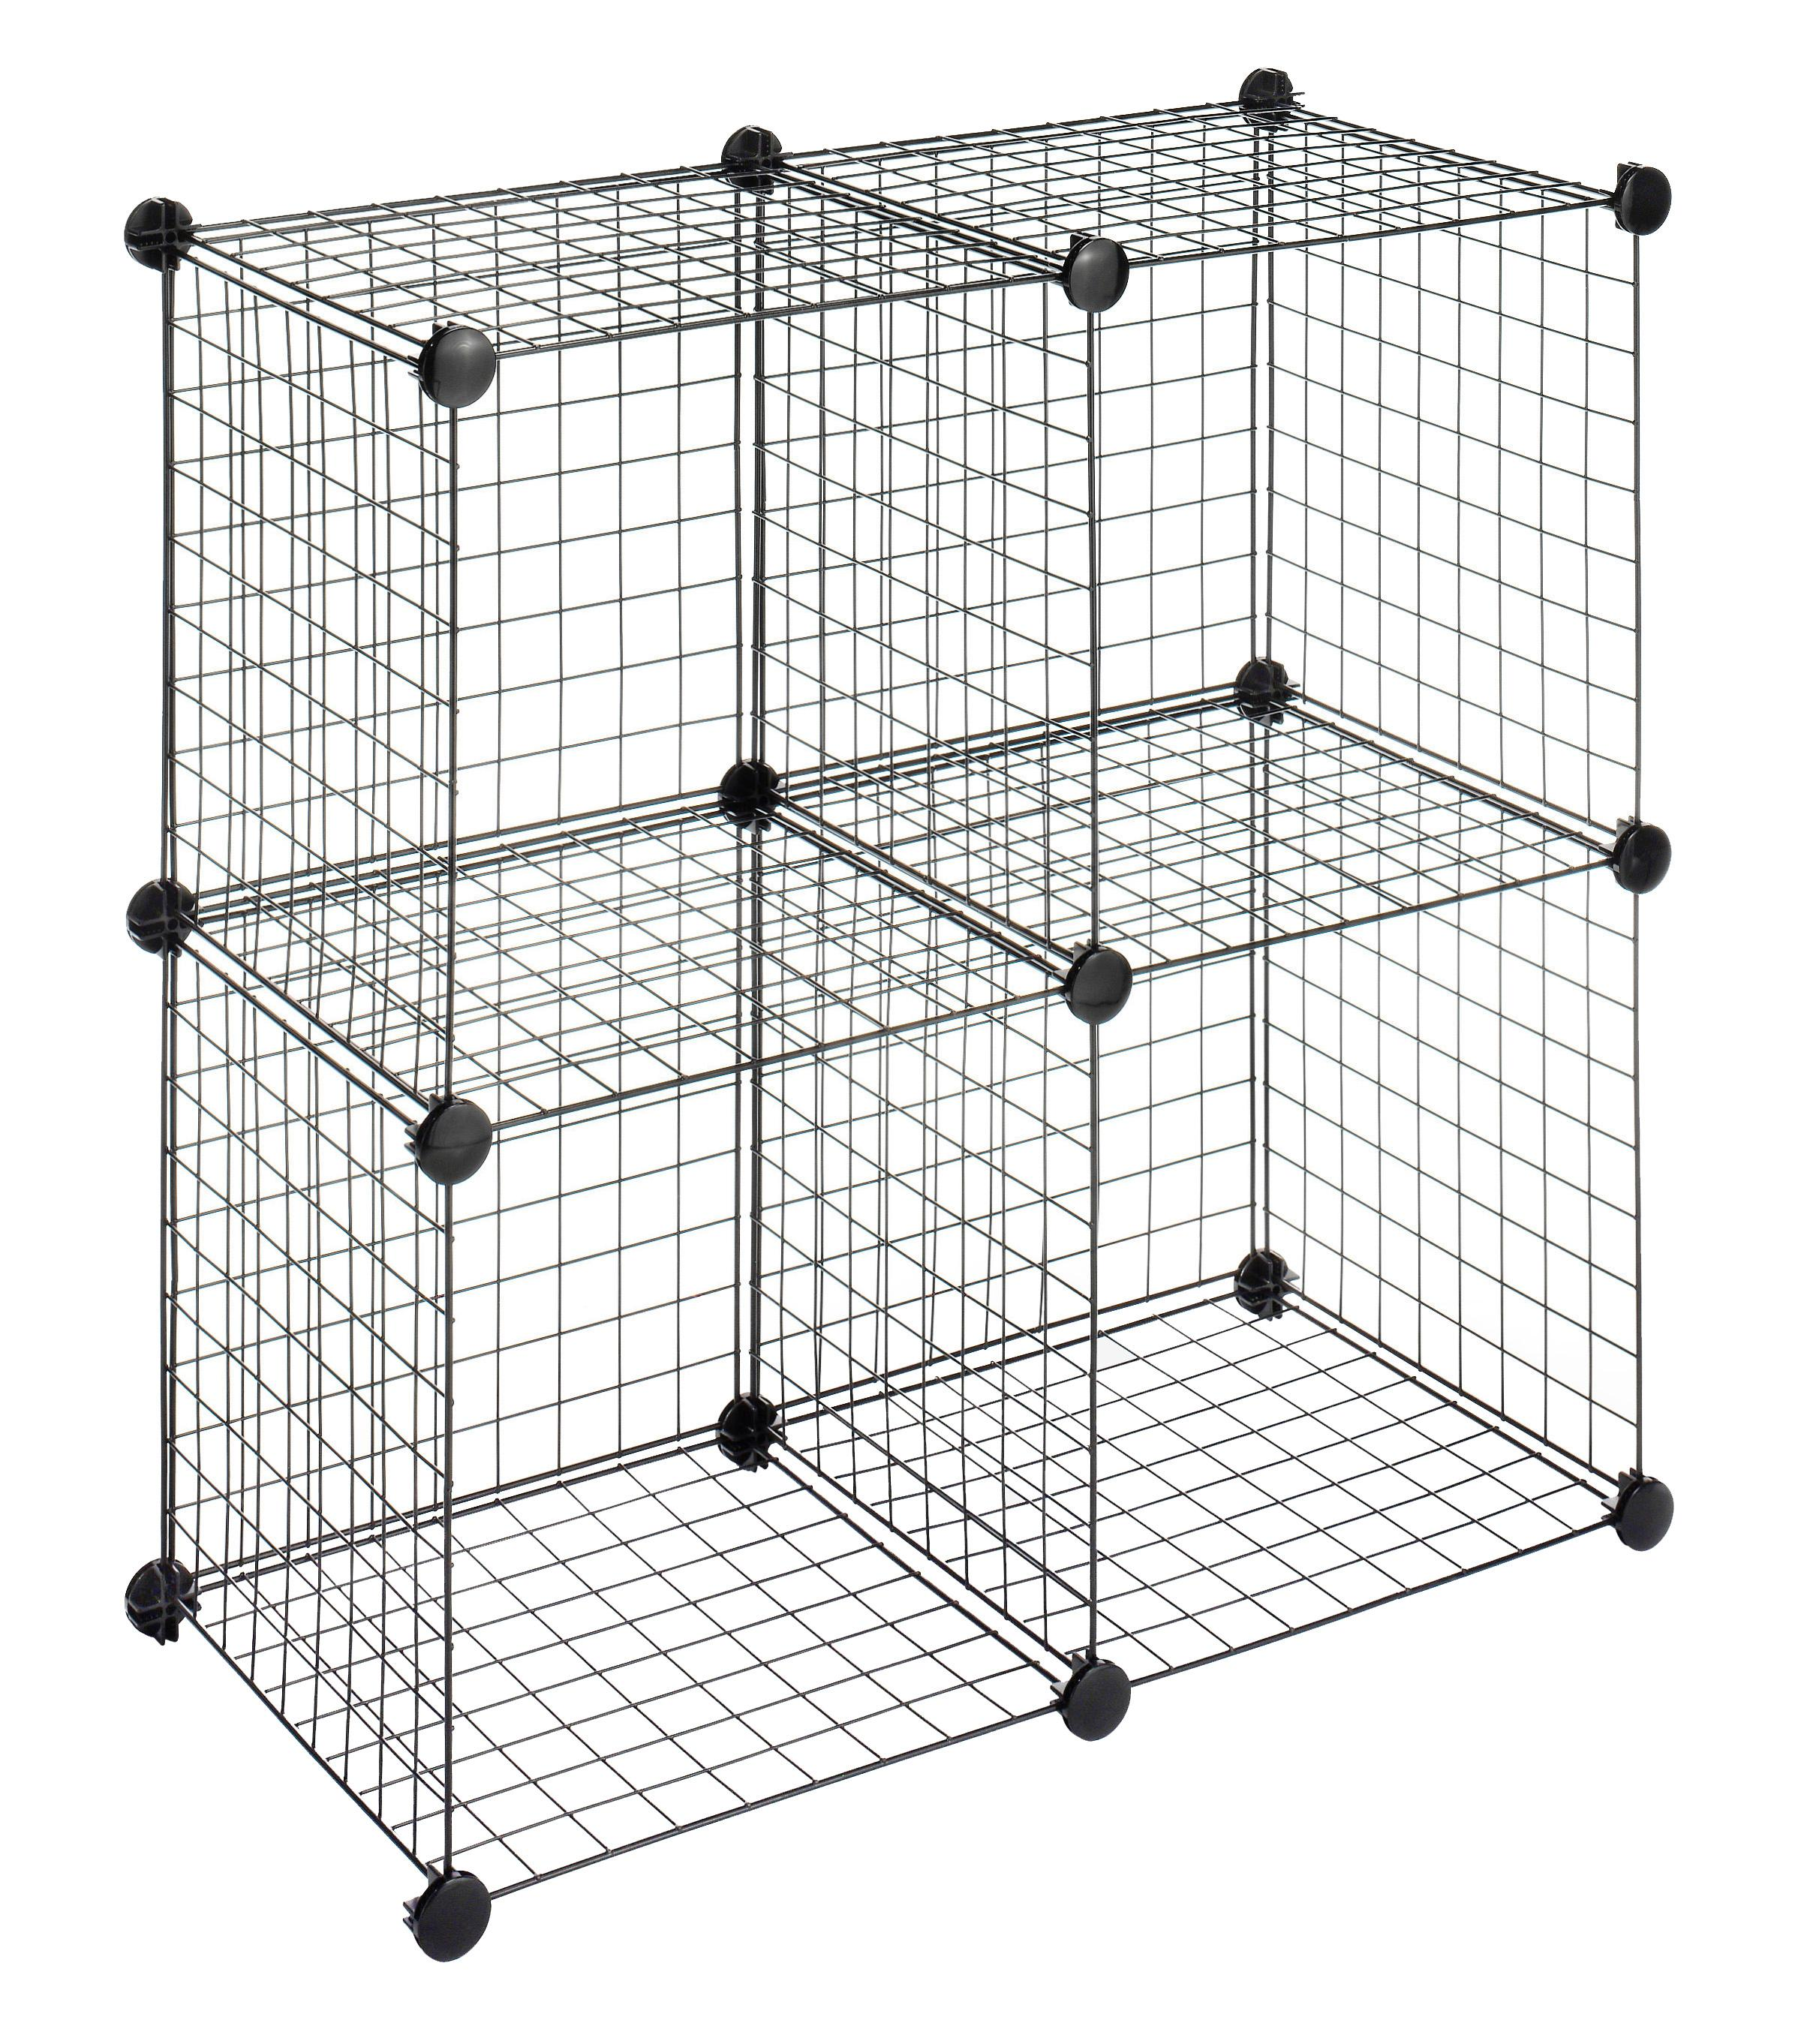 Amazon.com - Whitmor Storage Cubes S/4, Black Wire - Closet Shelves